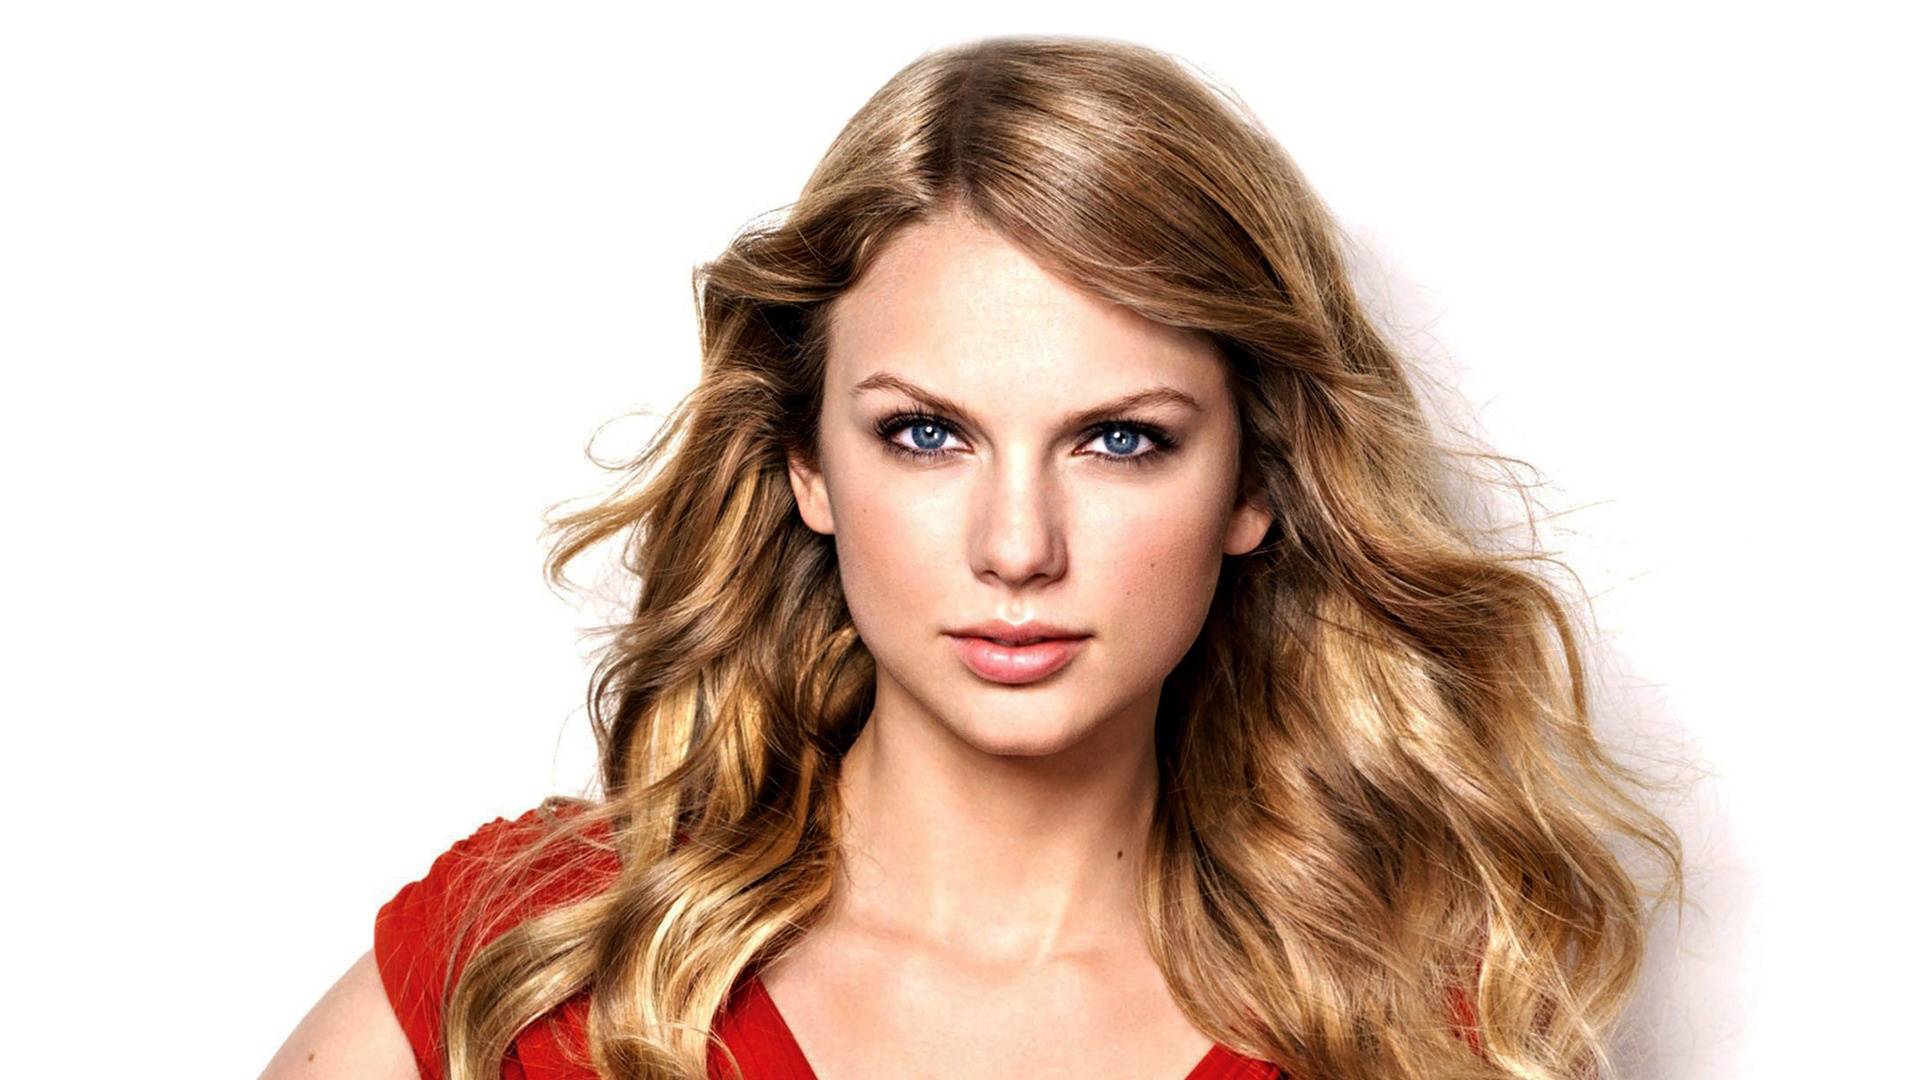 taylor swift wallpapers hd A5